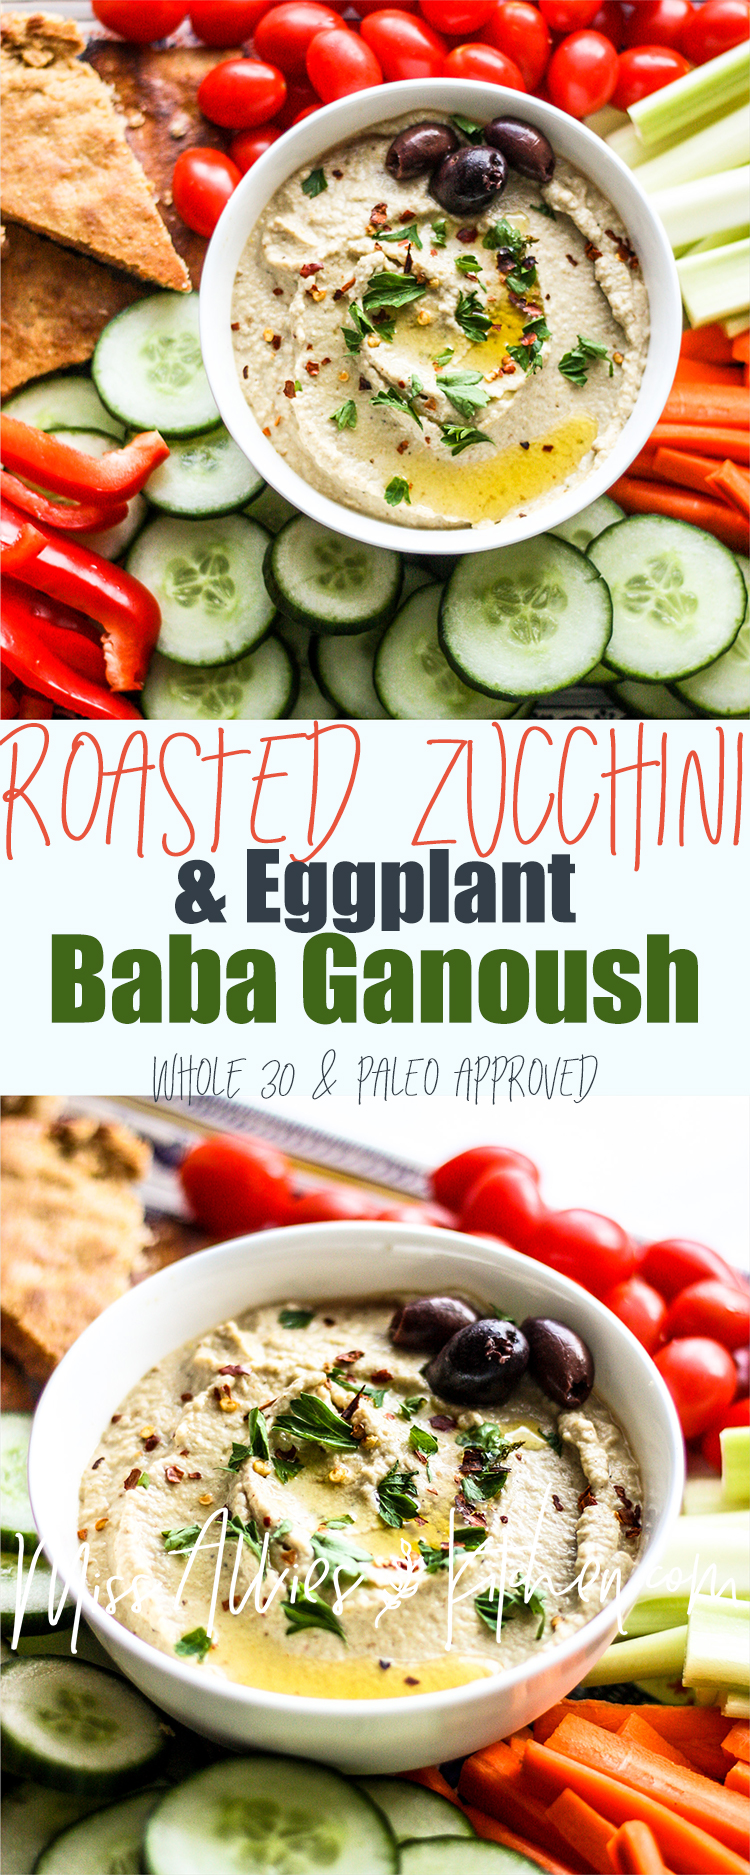 Whole30 Roasted Zucchini & Eggplant Baba Ganoush - a perfect party dip!